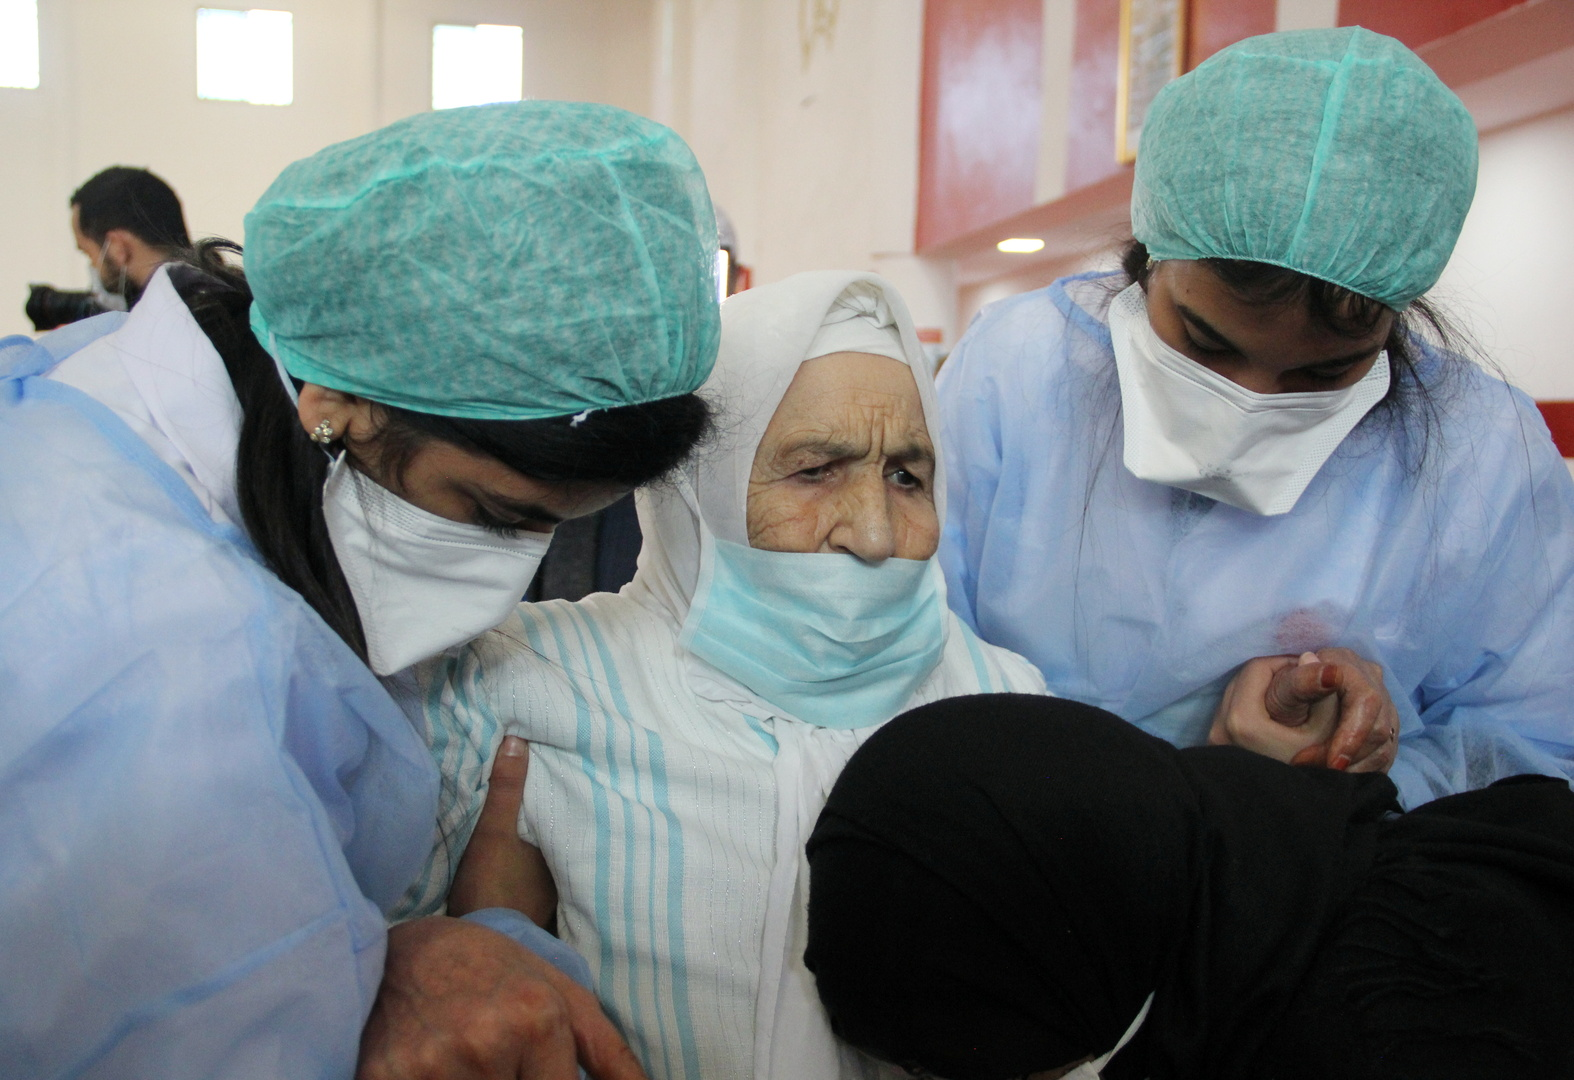 Morocco ... more than 746 thousand beneficiaries of the Coronavirus vaccination